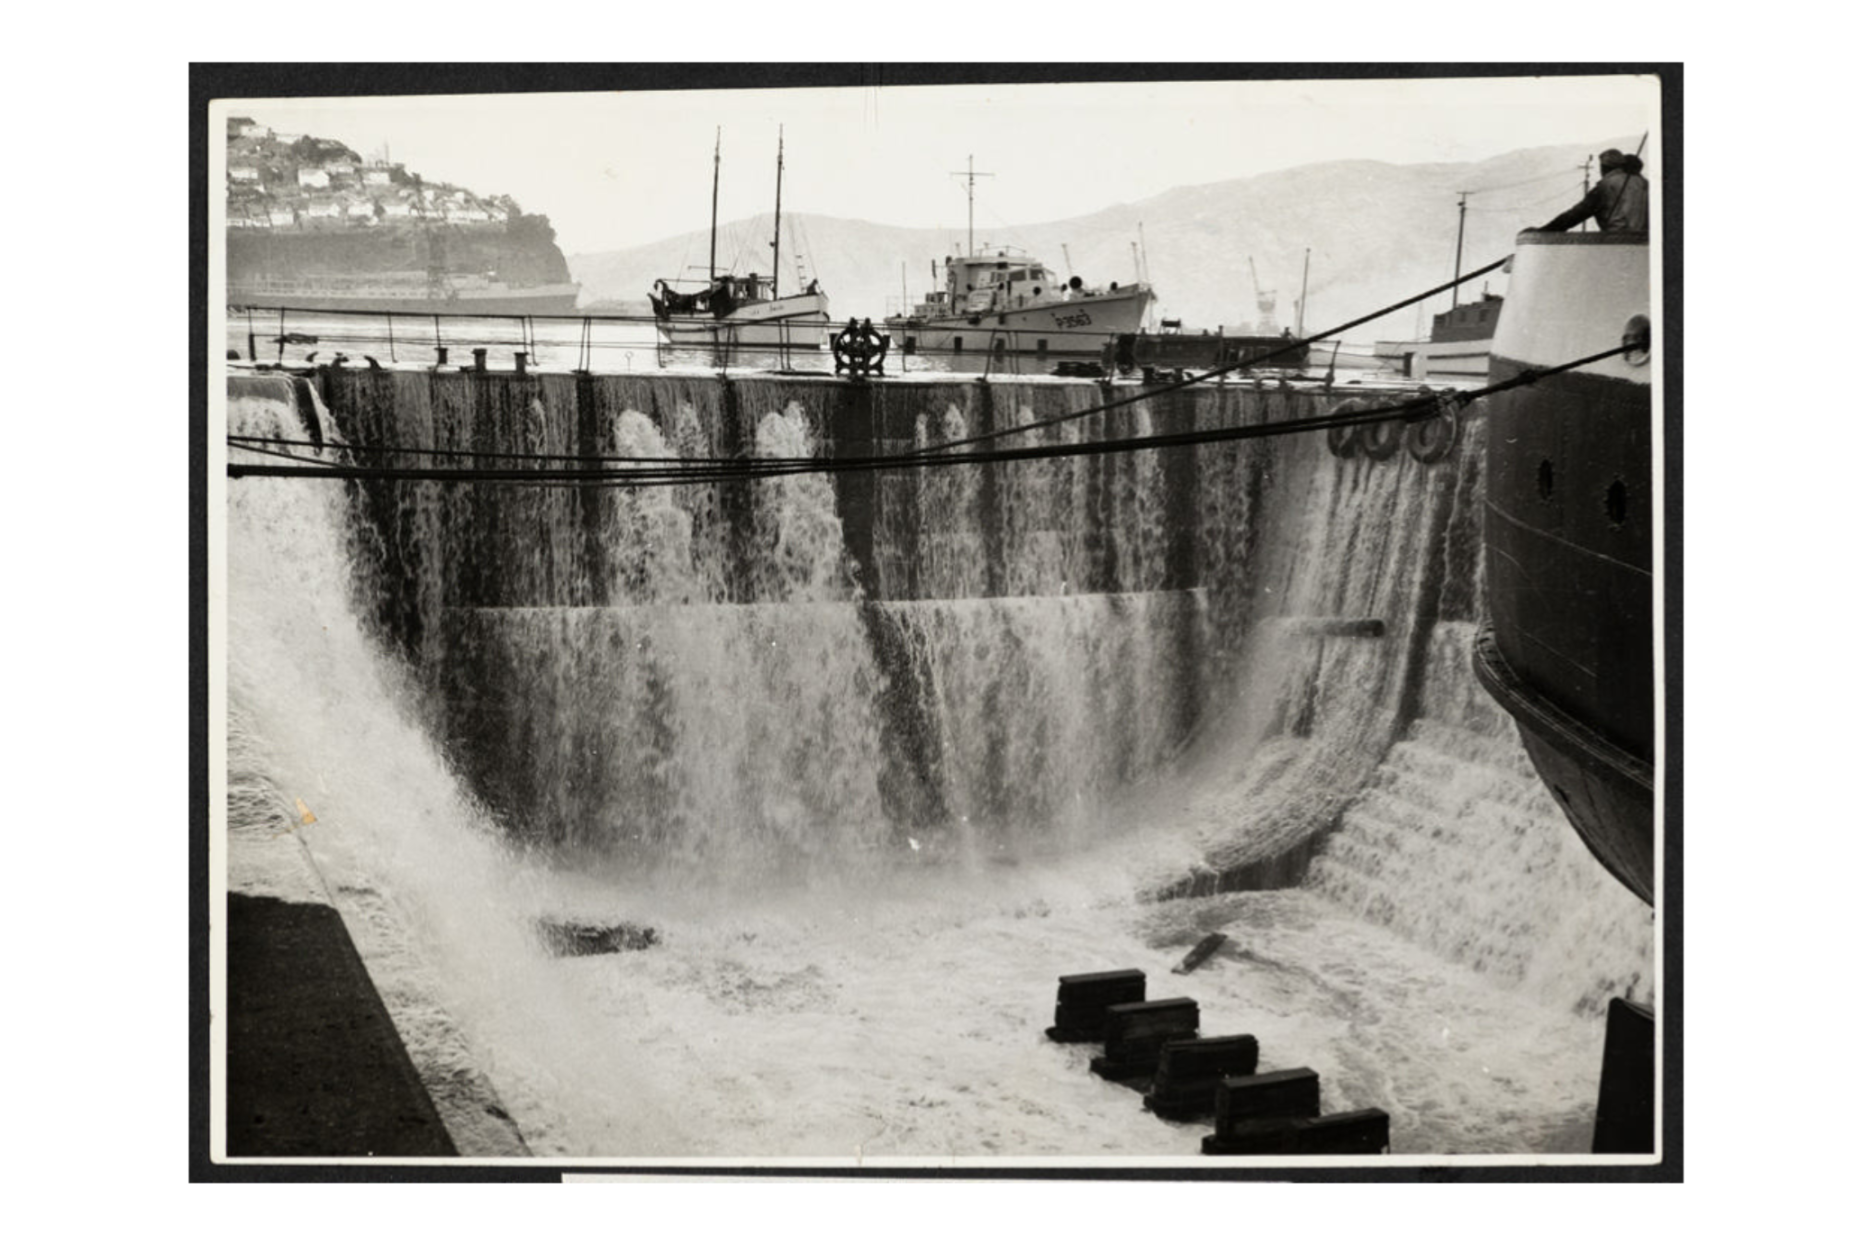 Water pouring into the Graving Dock at Lyttelton Port during the 23 May 1960 Tsunami